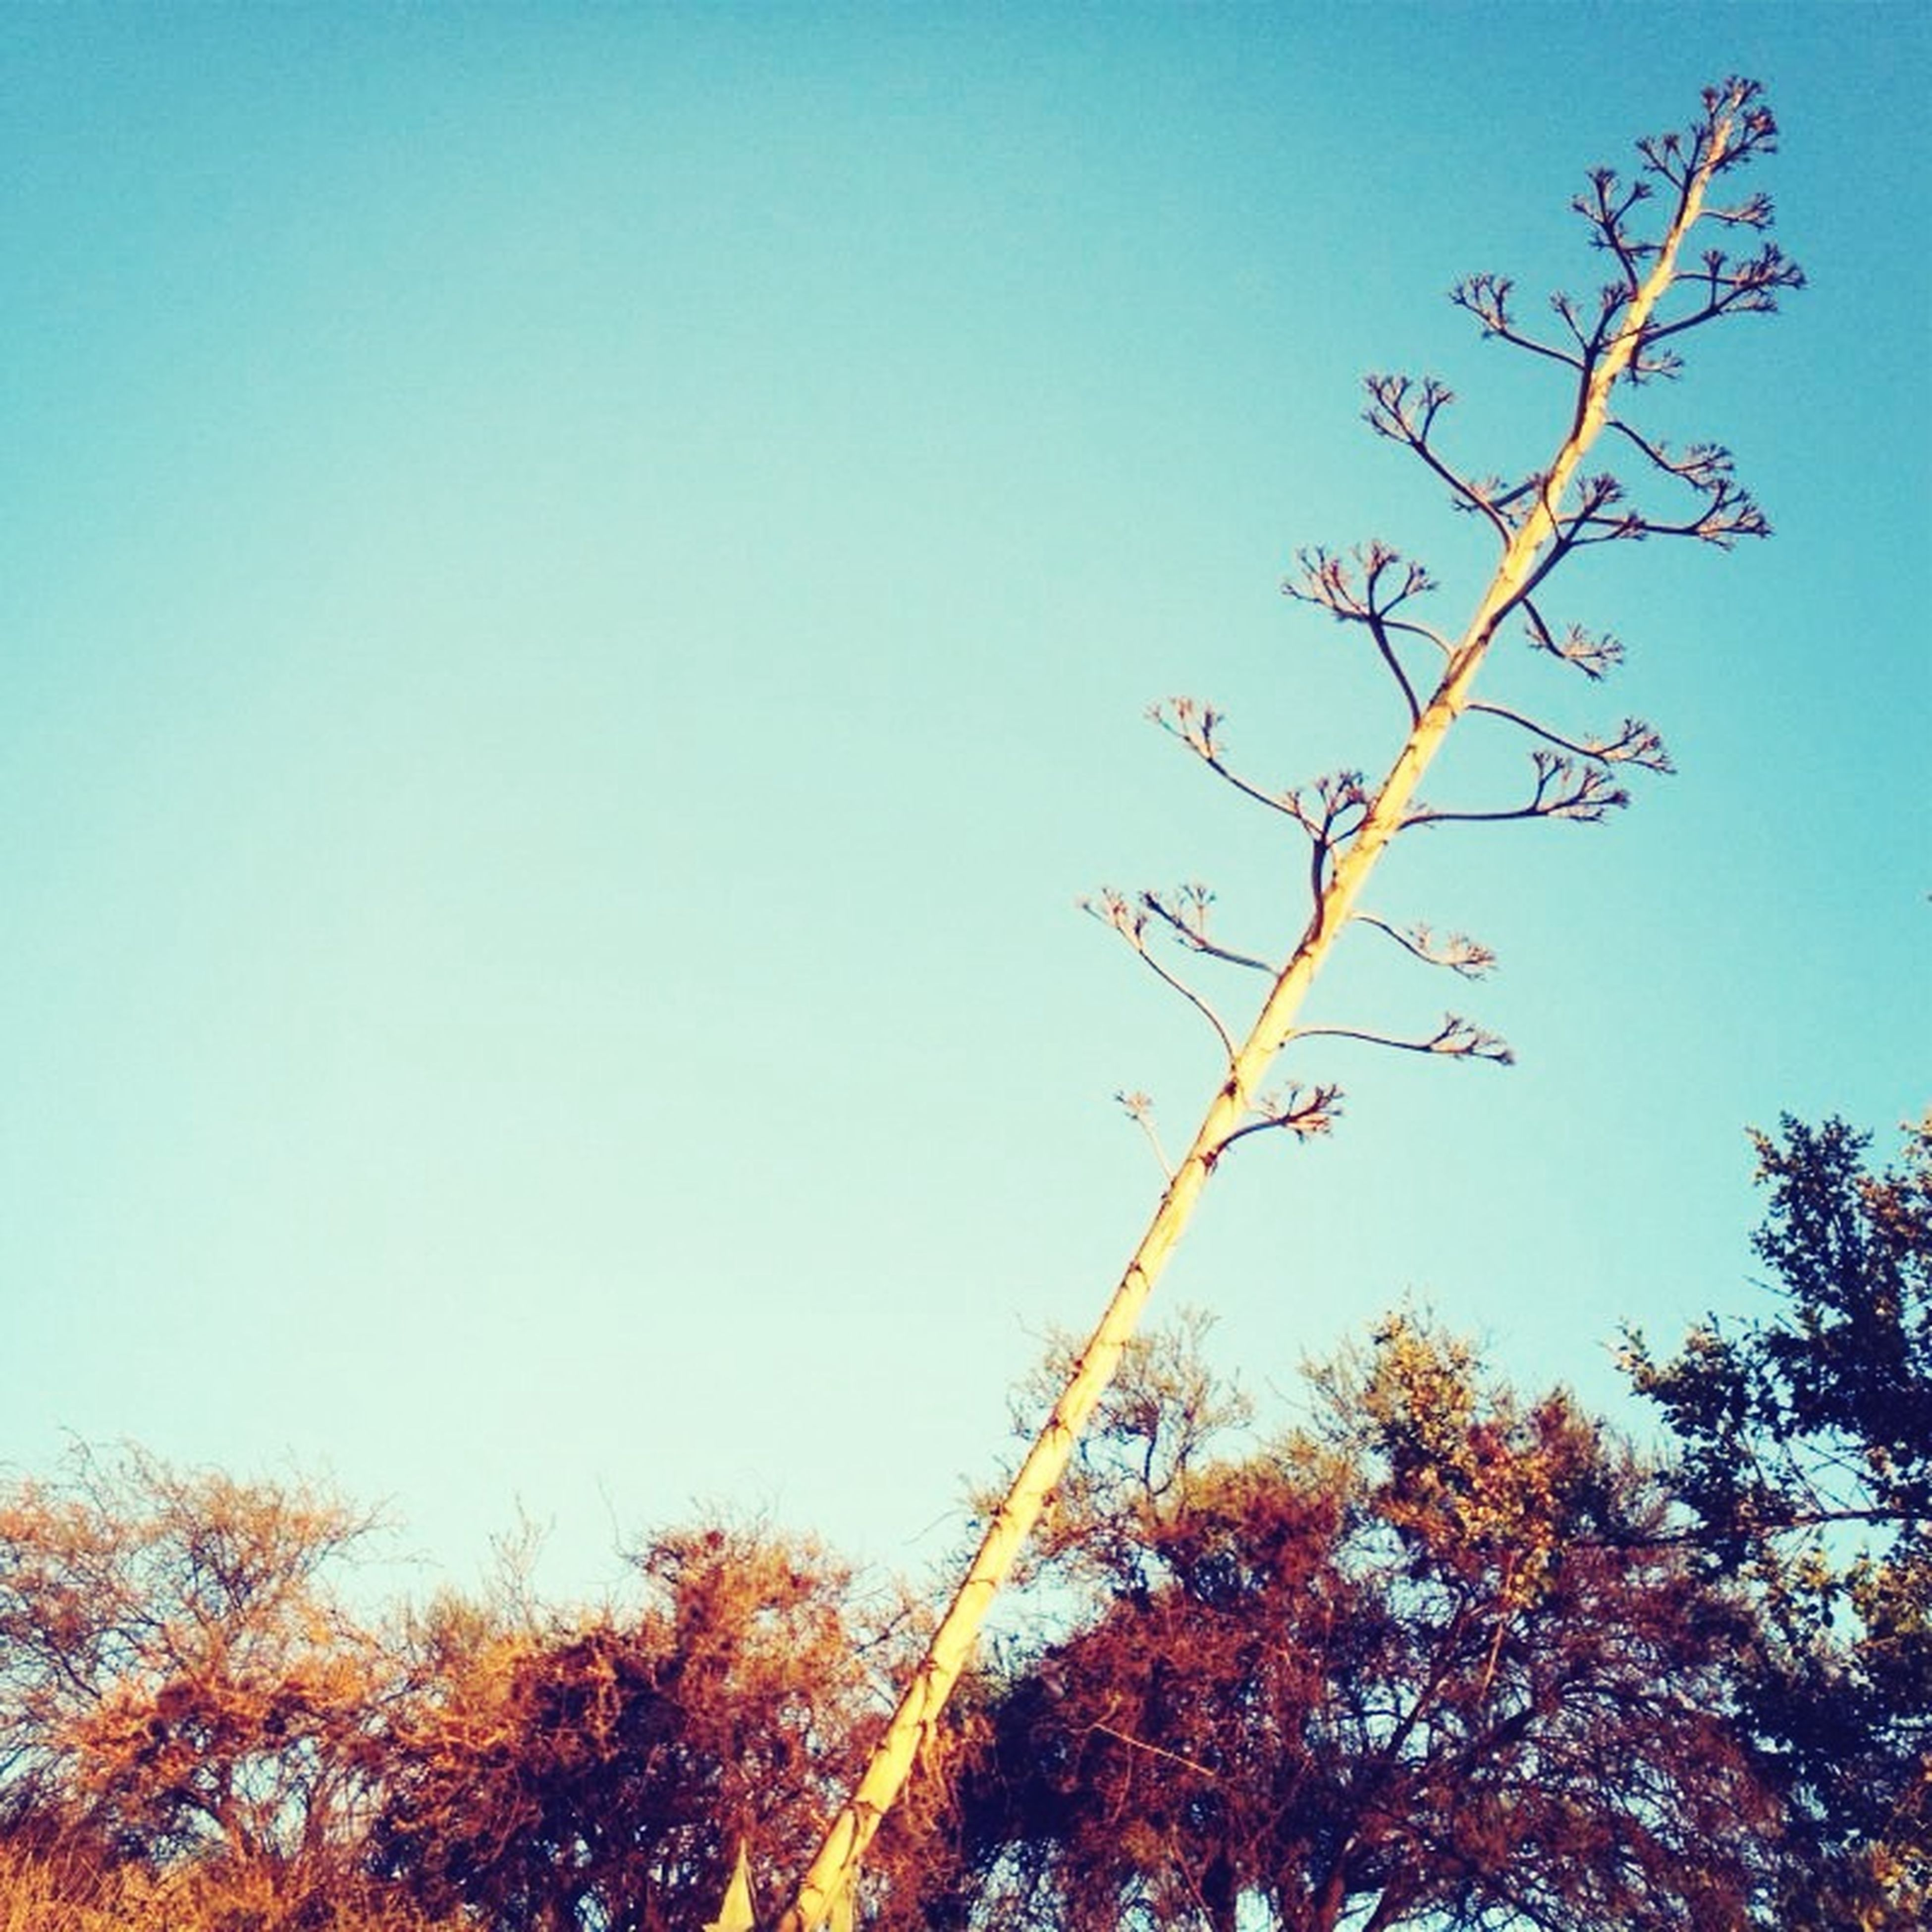 clear sky, tree, low angle view, branch, copy space, blue, nature, growth, tranquility, beauty in nature, high section, outdoors, scenics, day, no people, bare tree, treetop, tranquil scene, leaf, autumn